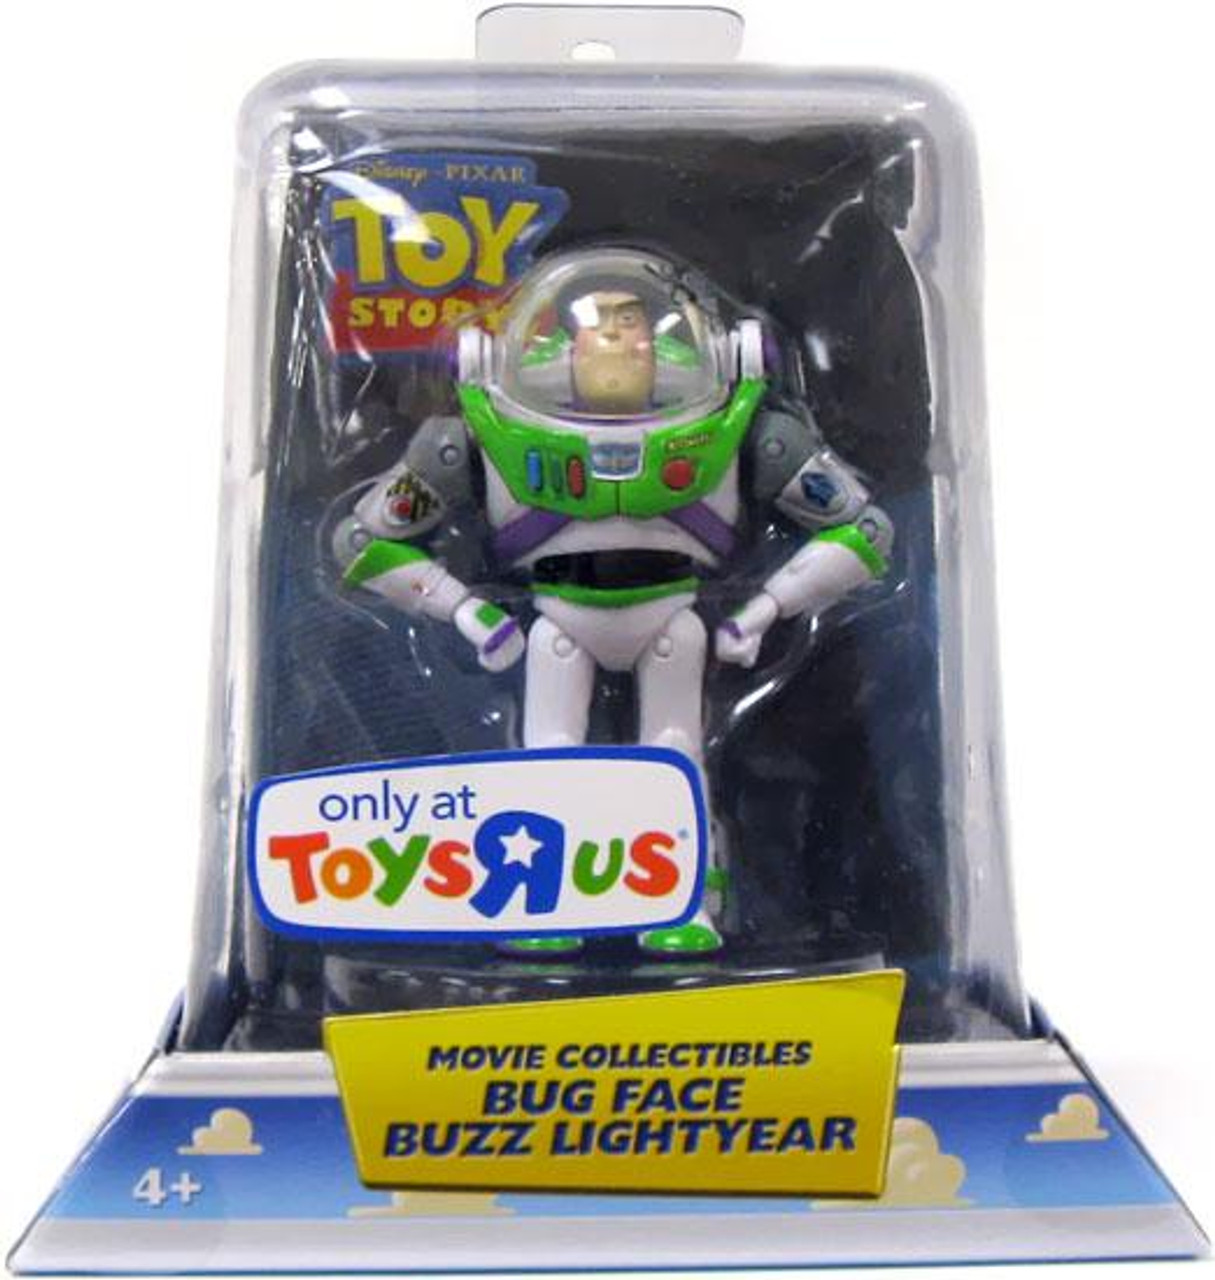 Toy Story Movie Collectibles Buzz Lightyear Exclusive Action Figure [Bug Face]